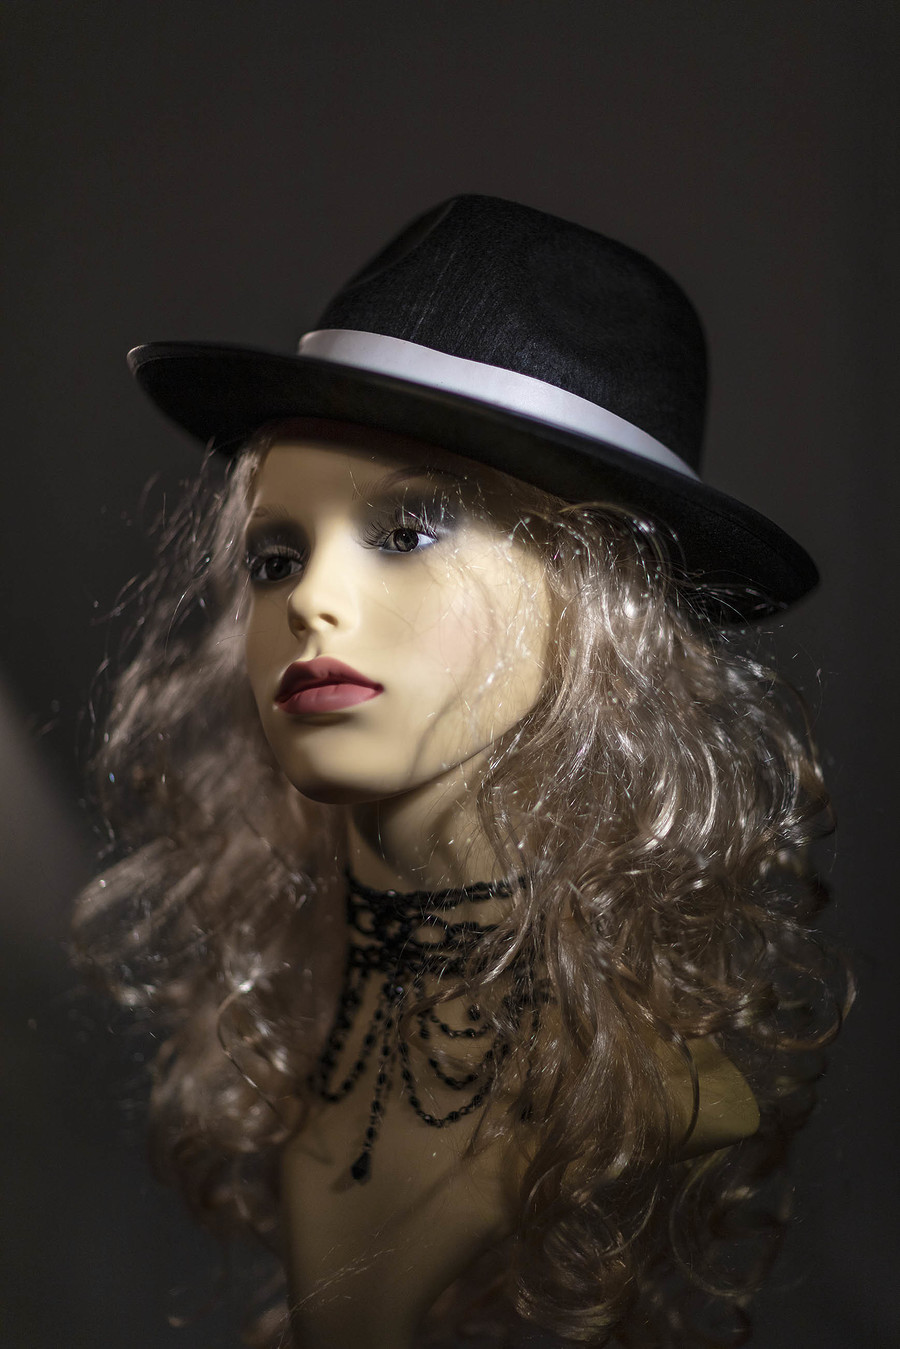 LUCY GOES UNDERCOVER AGENT / Photography by troy4, Designer troy4 / Uploaded 11th November 2020 @ 09:54 AM